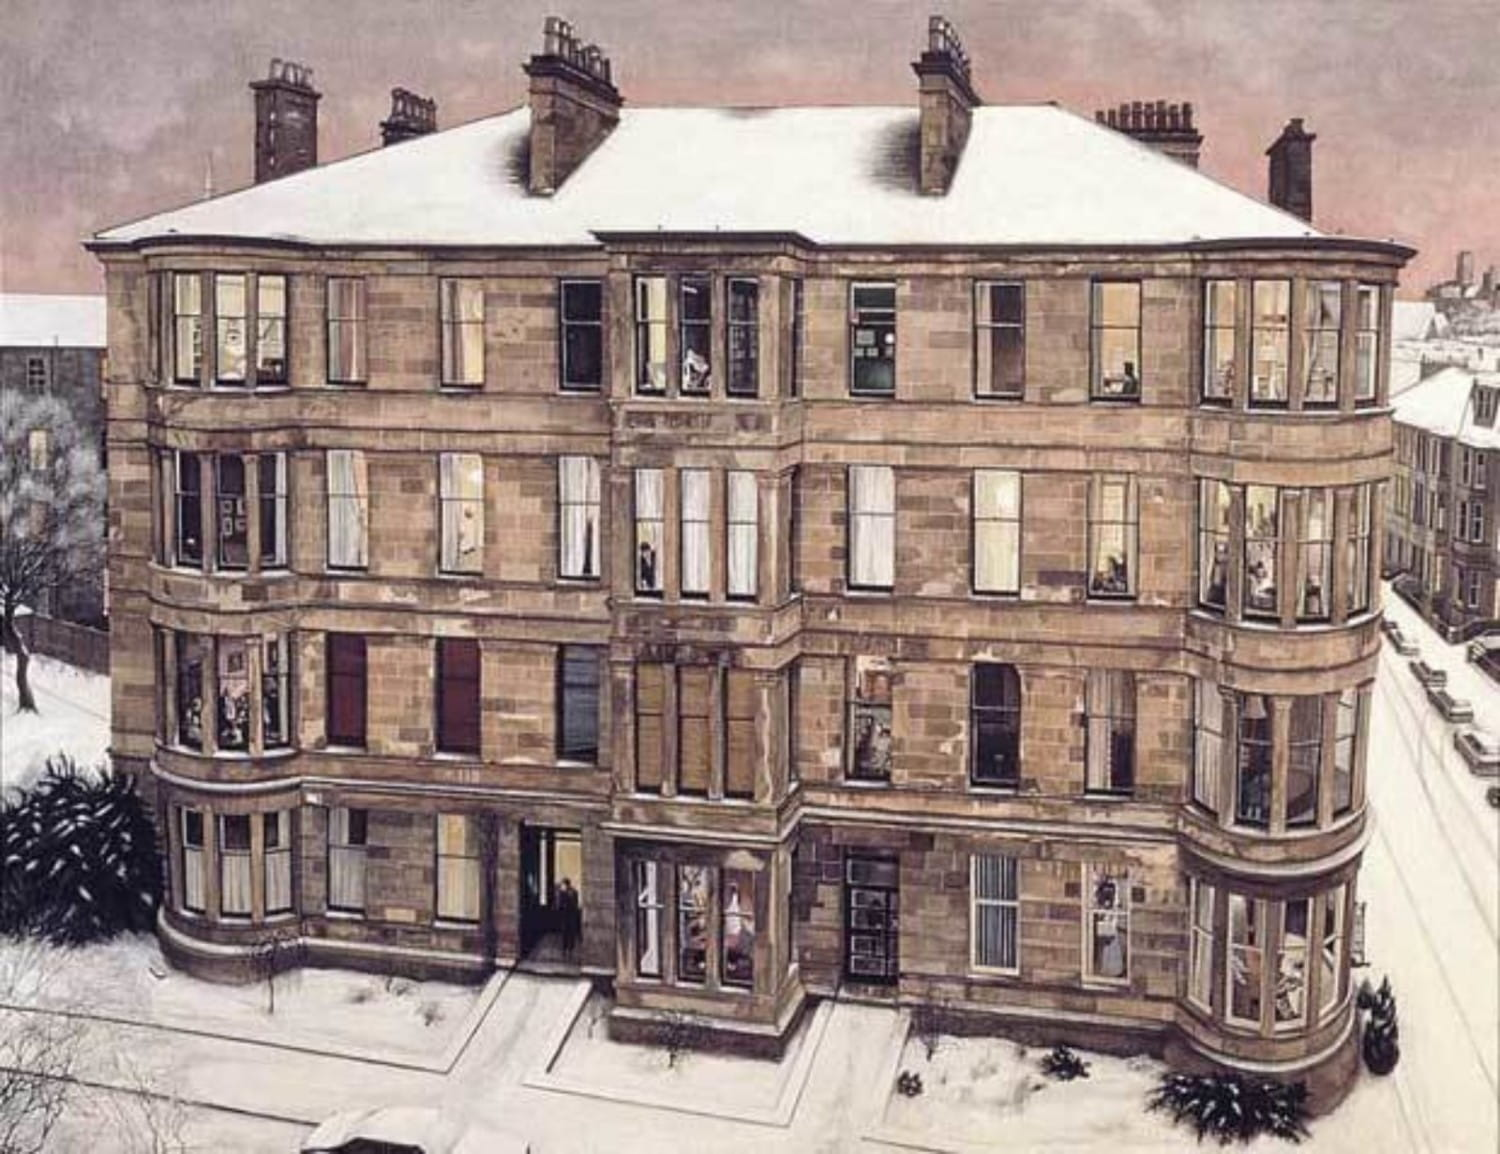 The same Saltoun Street block, as seen in Avril Paton's magical 'Windows on the West' (Glasgow Museums)